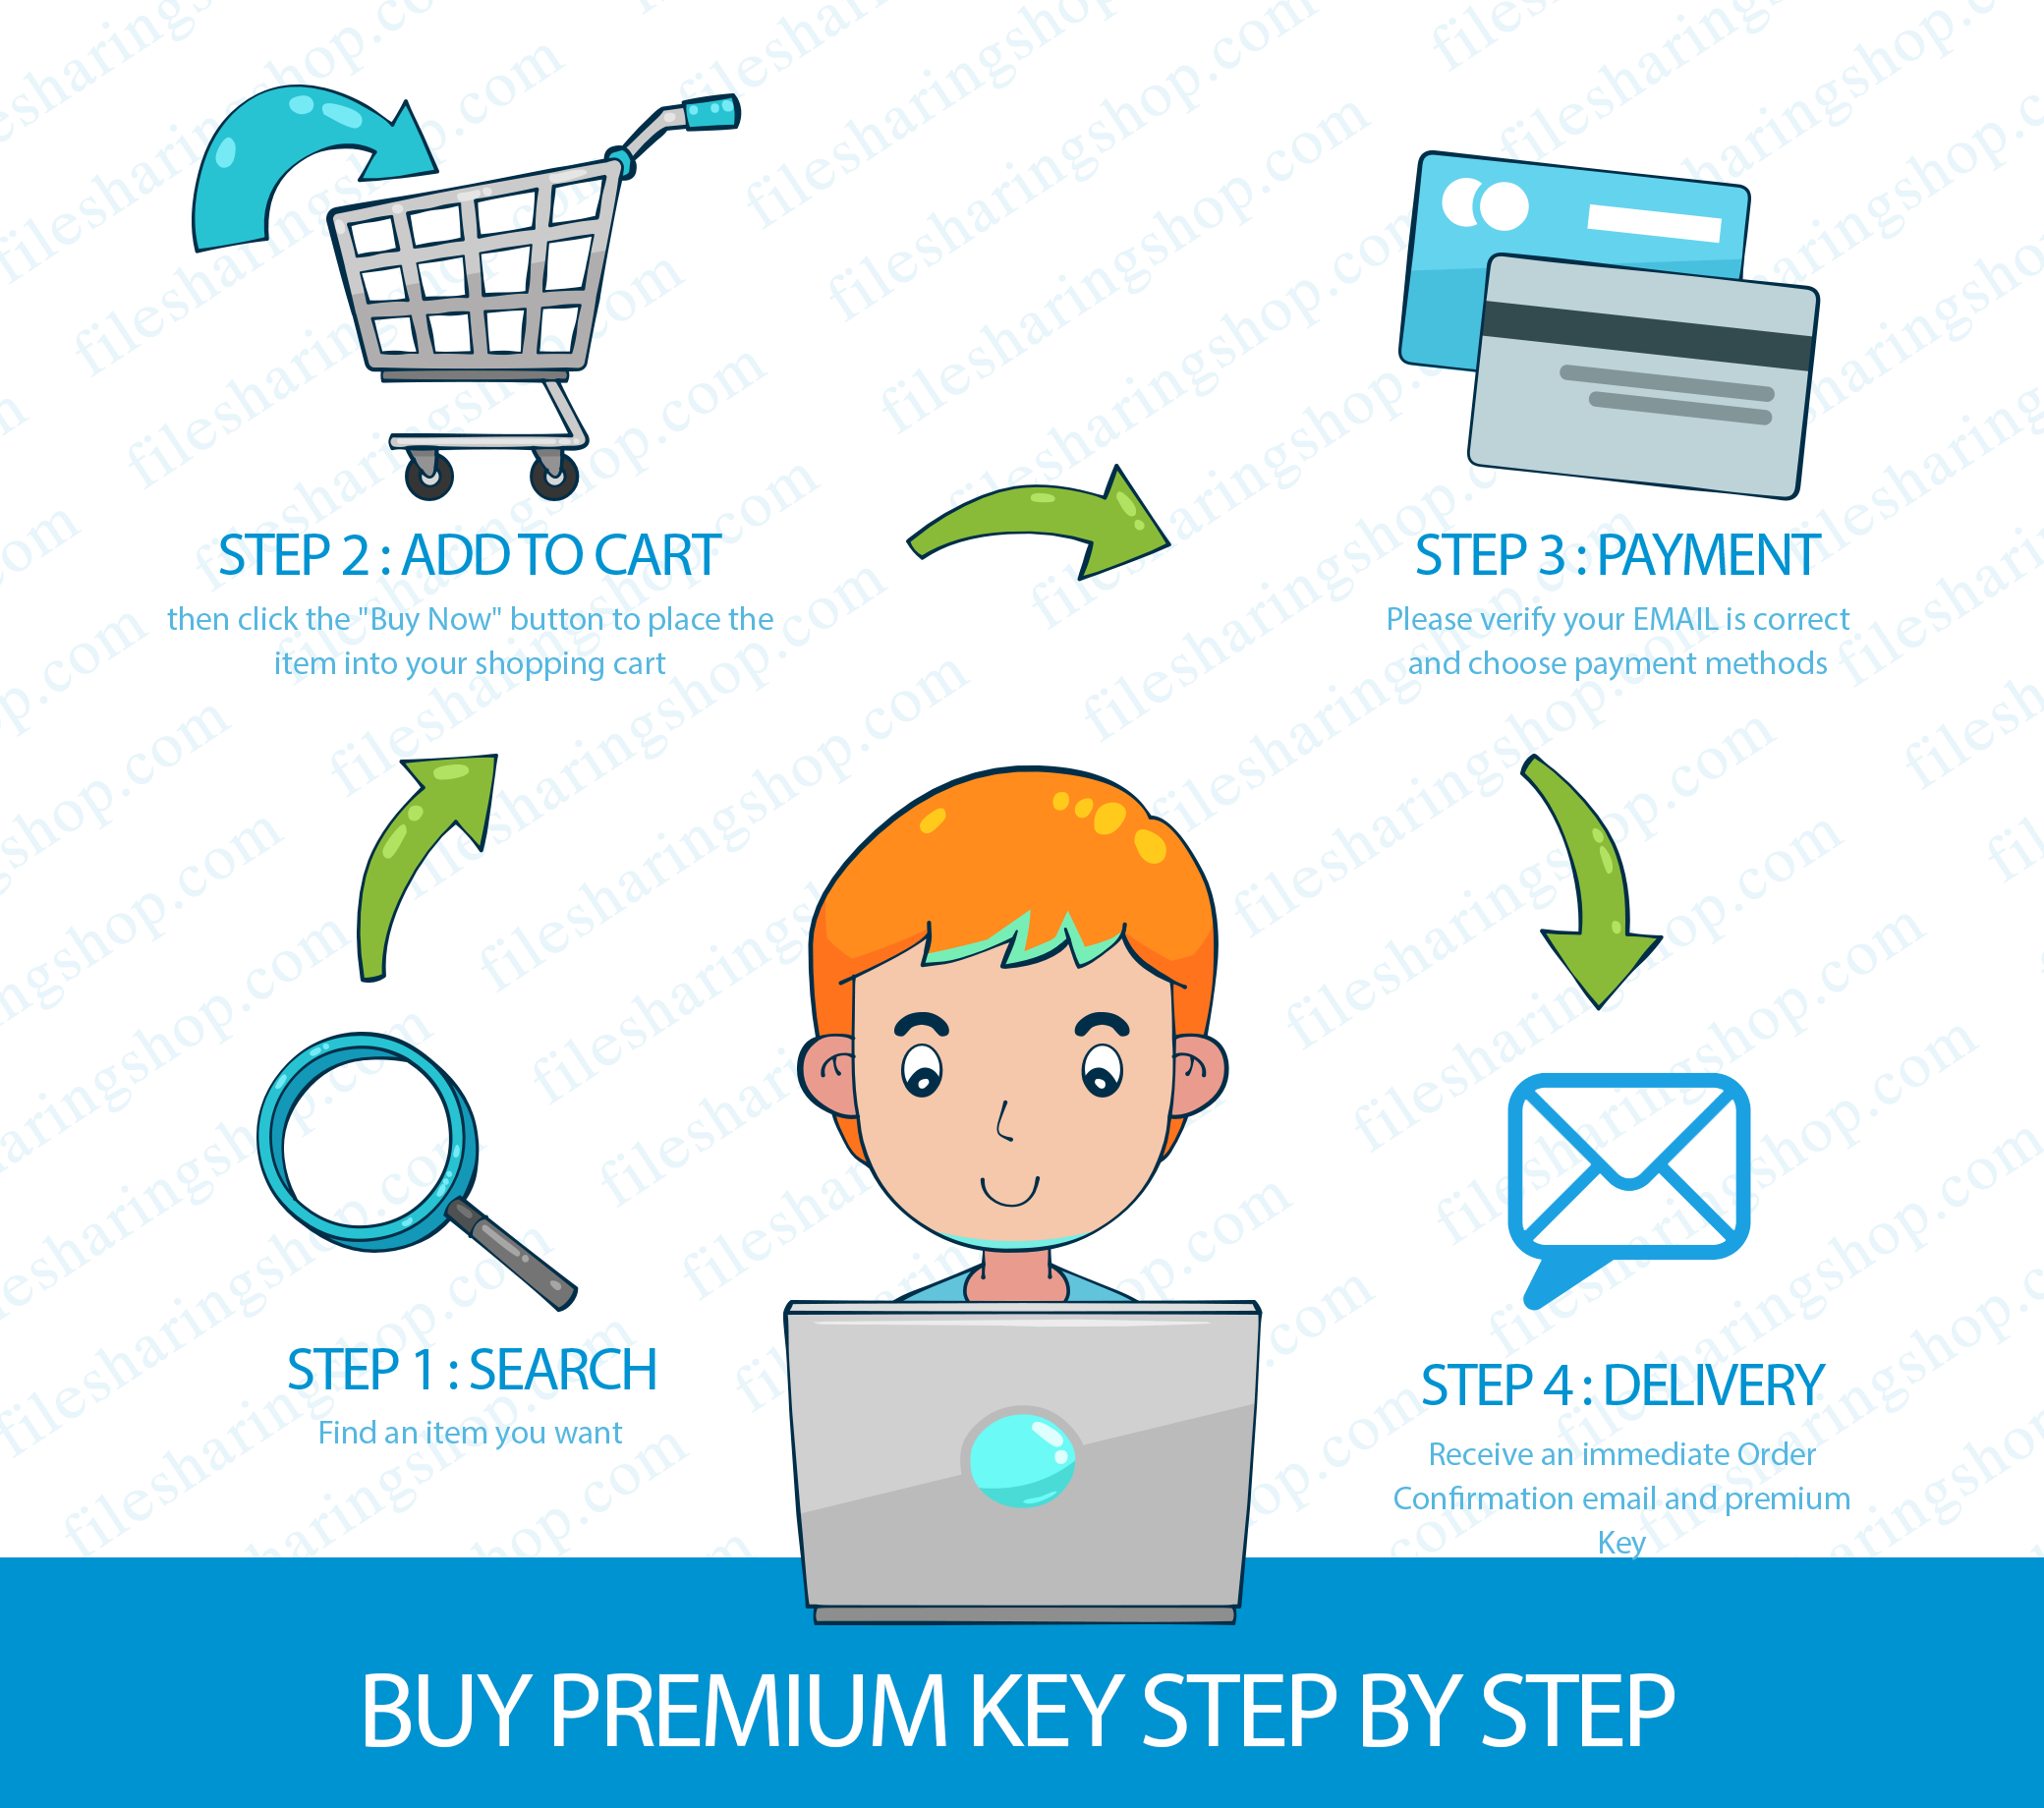 HOW TO BUY VIPFILE PREMIUM